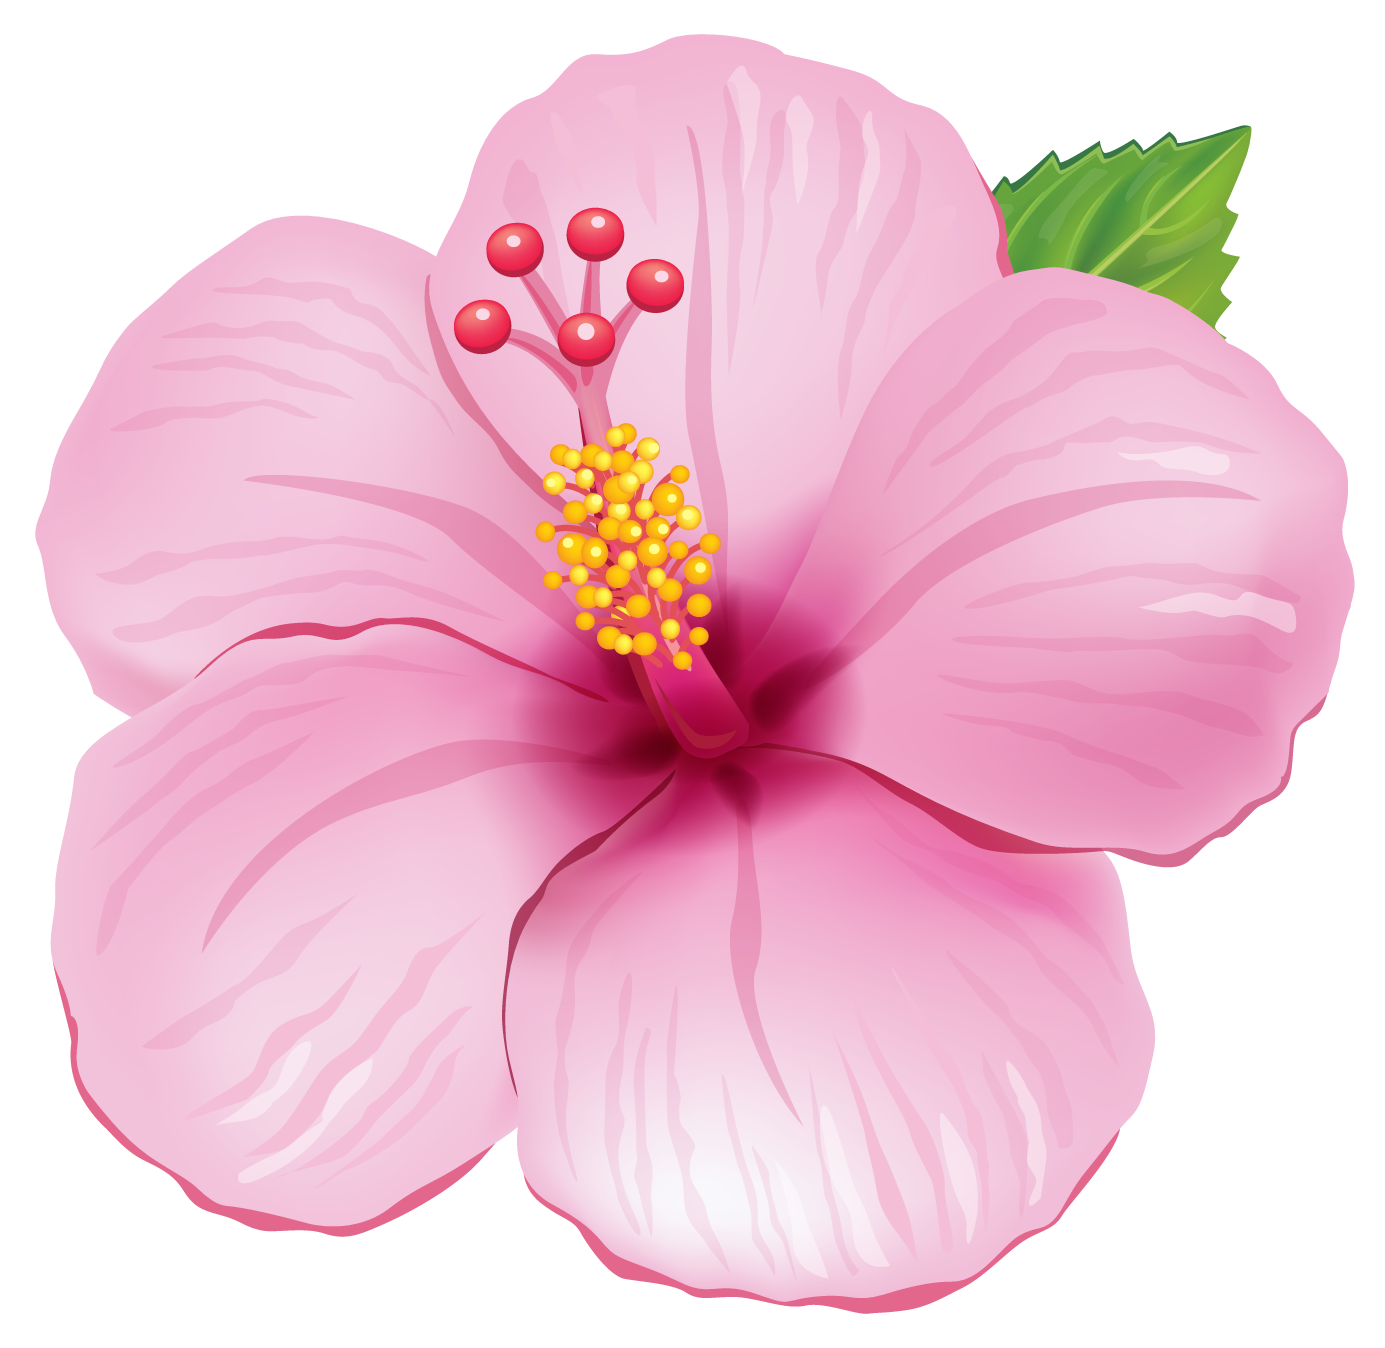 Flowers clipart tropical. Pink exotic flower png